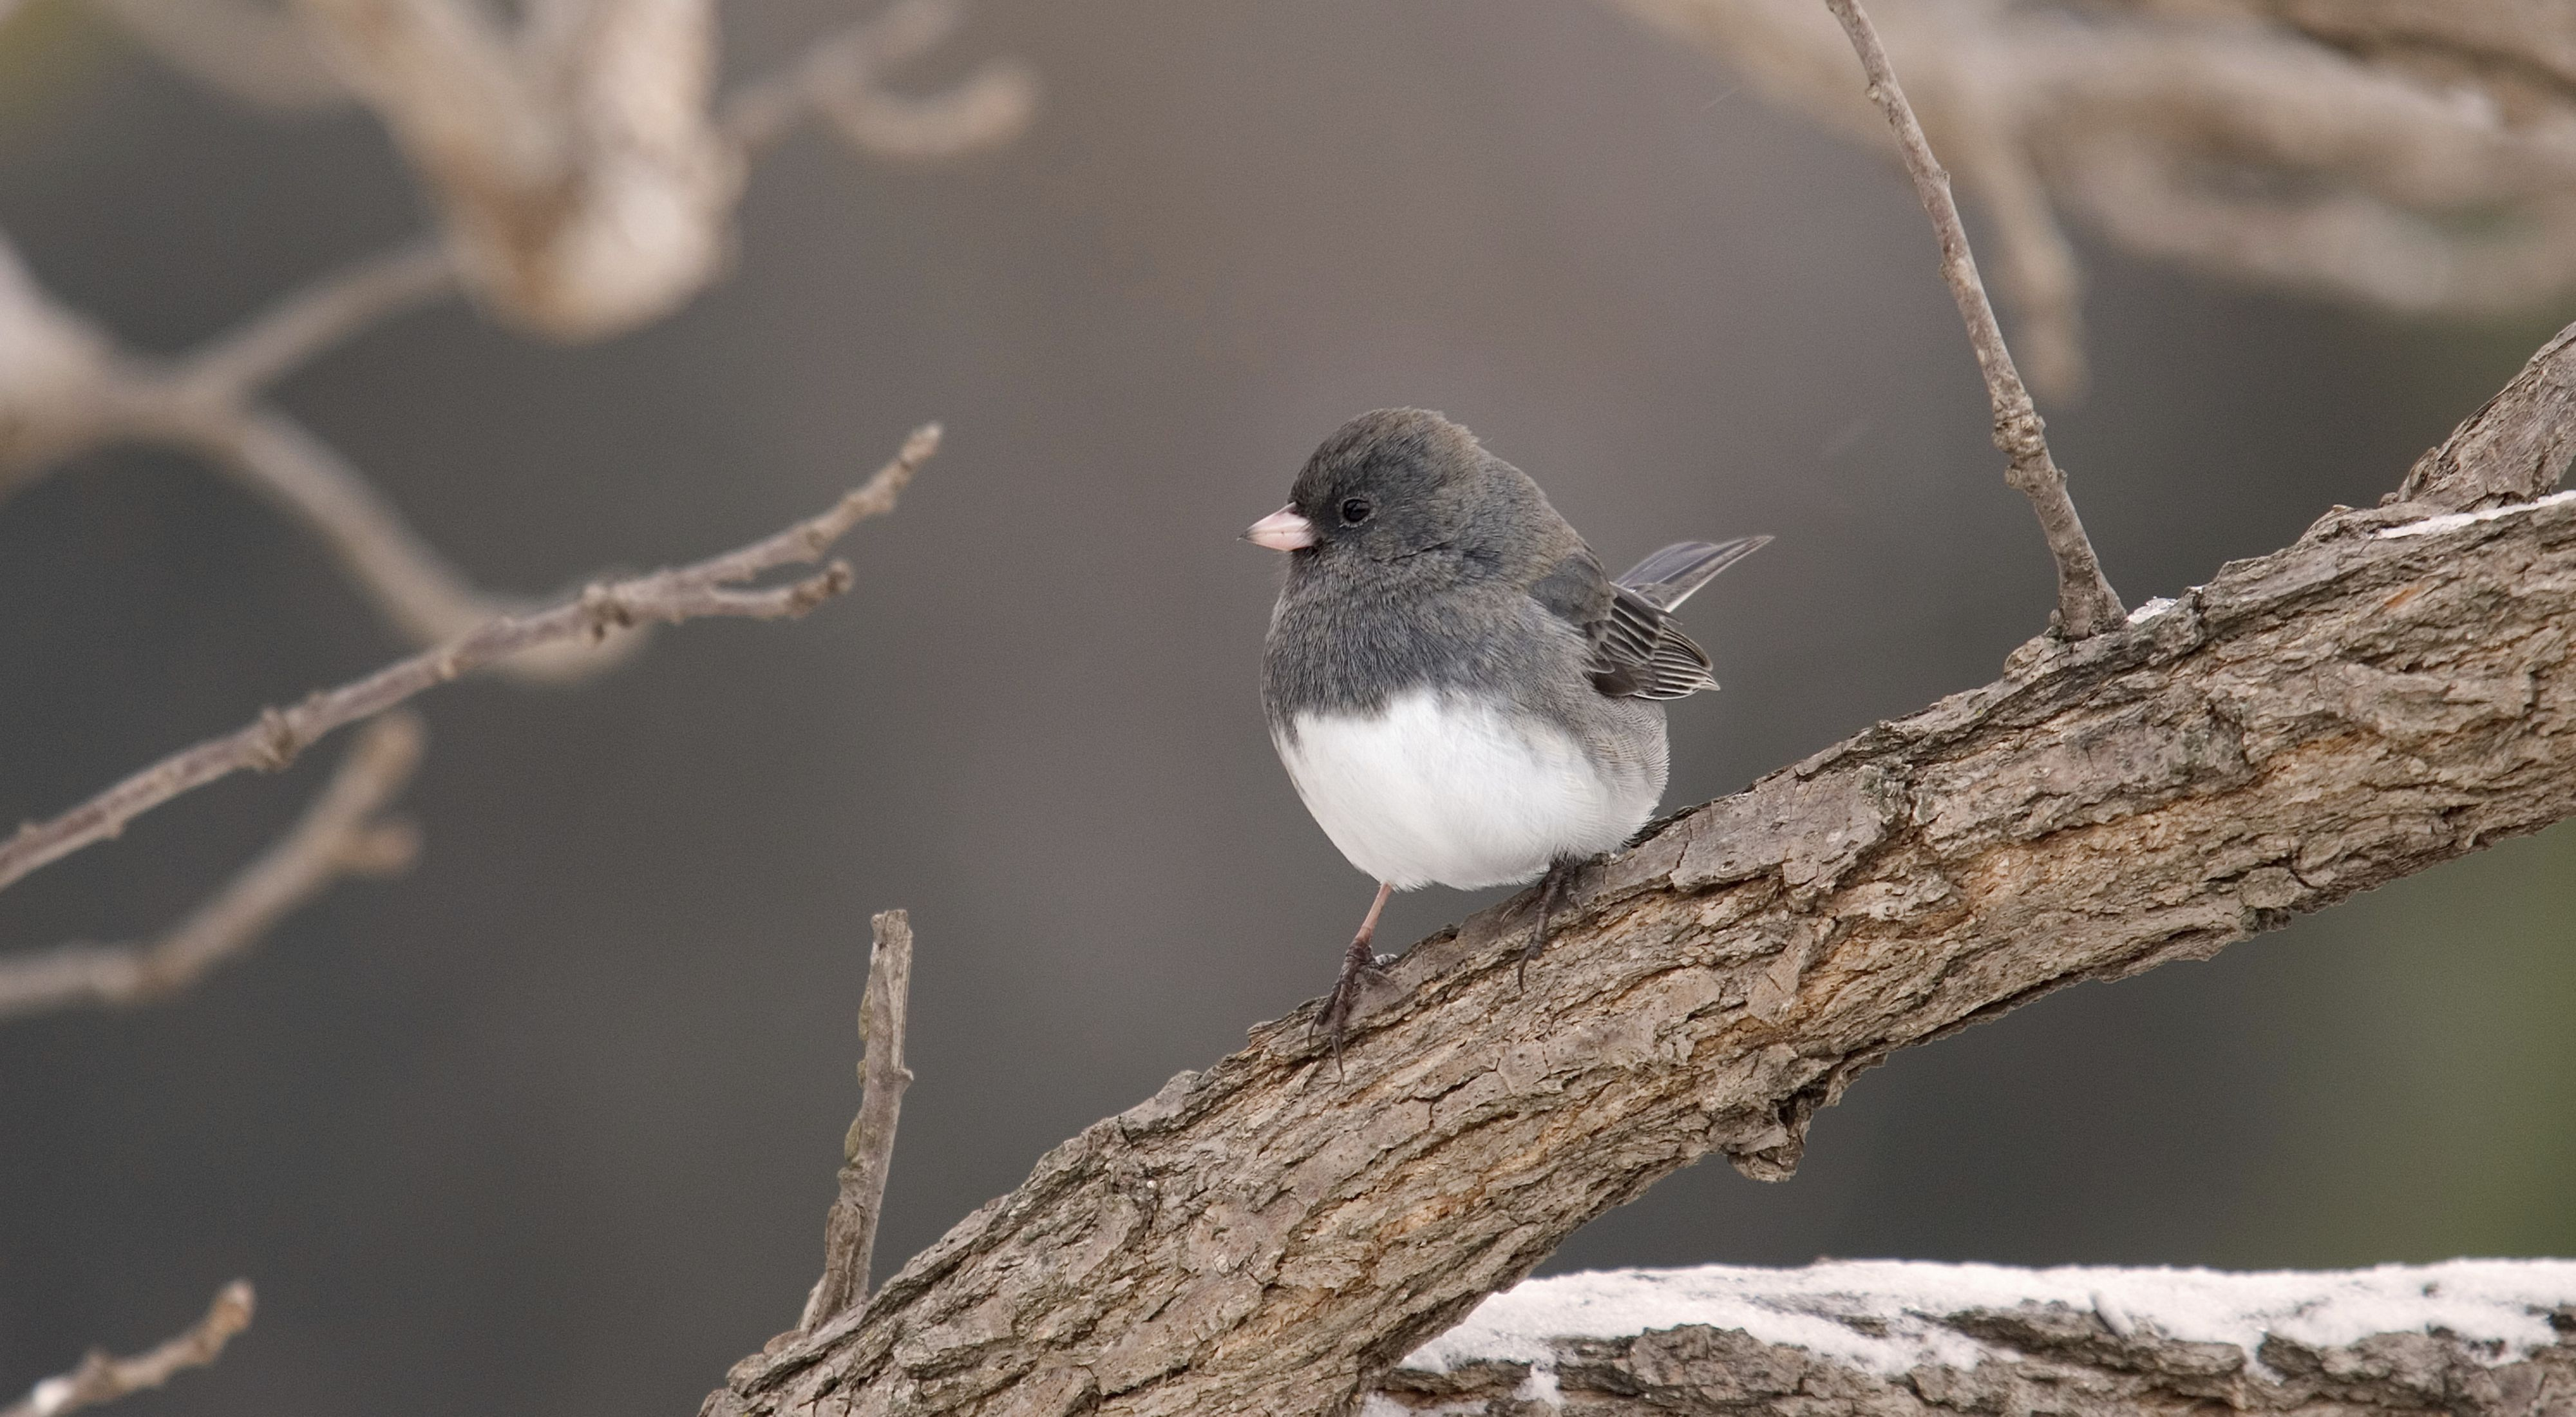 A small gray bird sits on a branch.